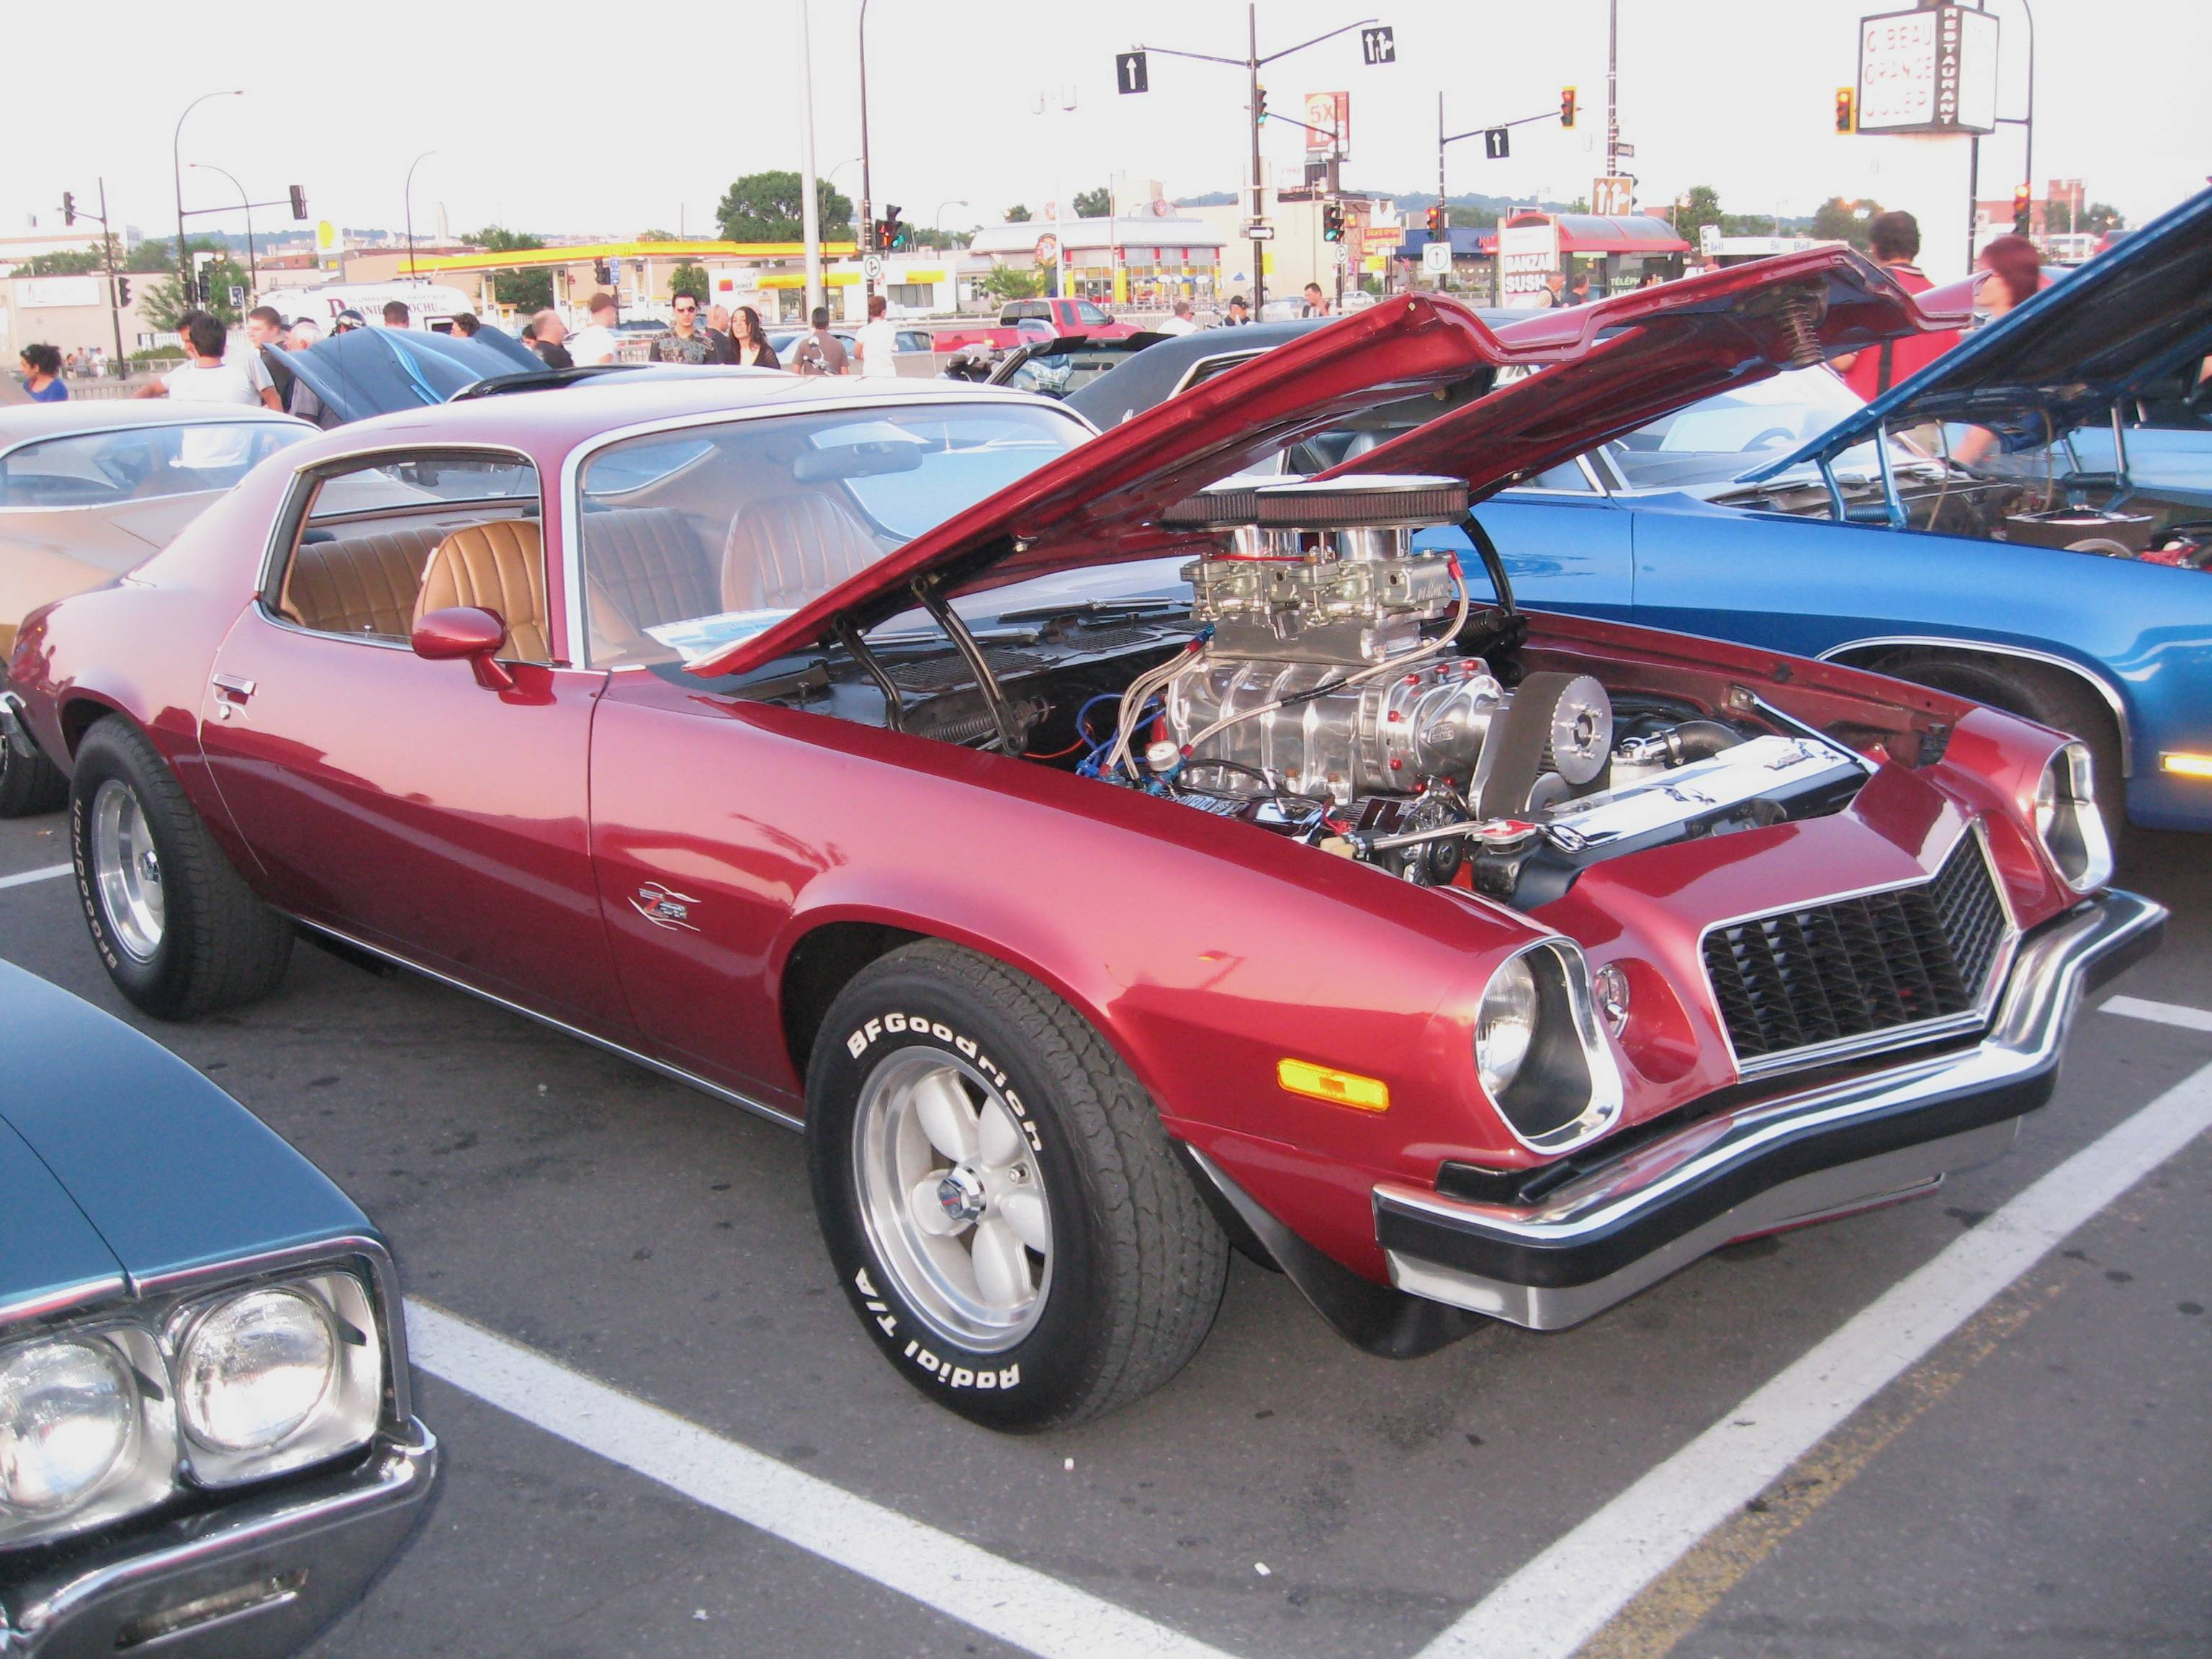 Camaro 1974 Dragster